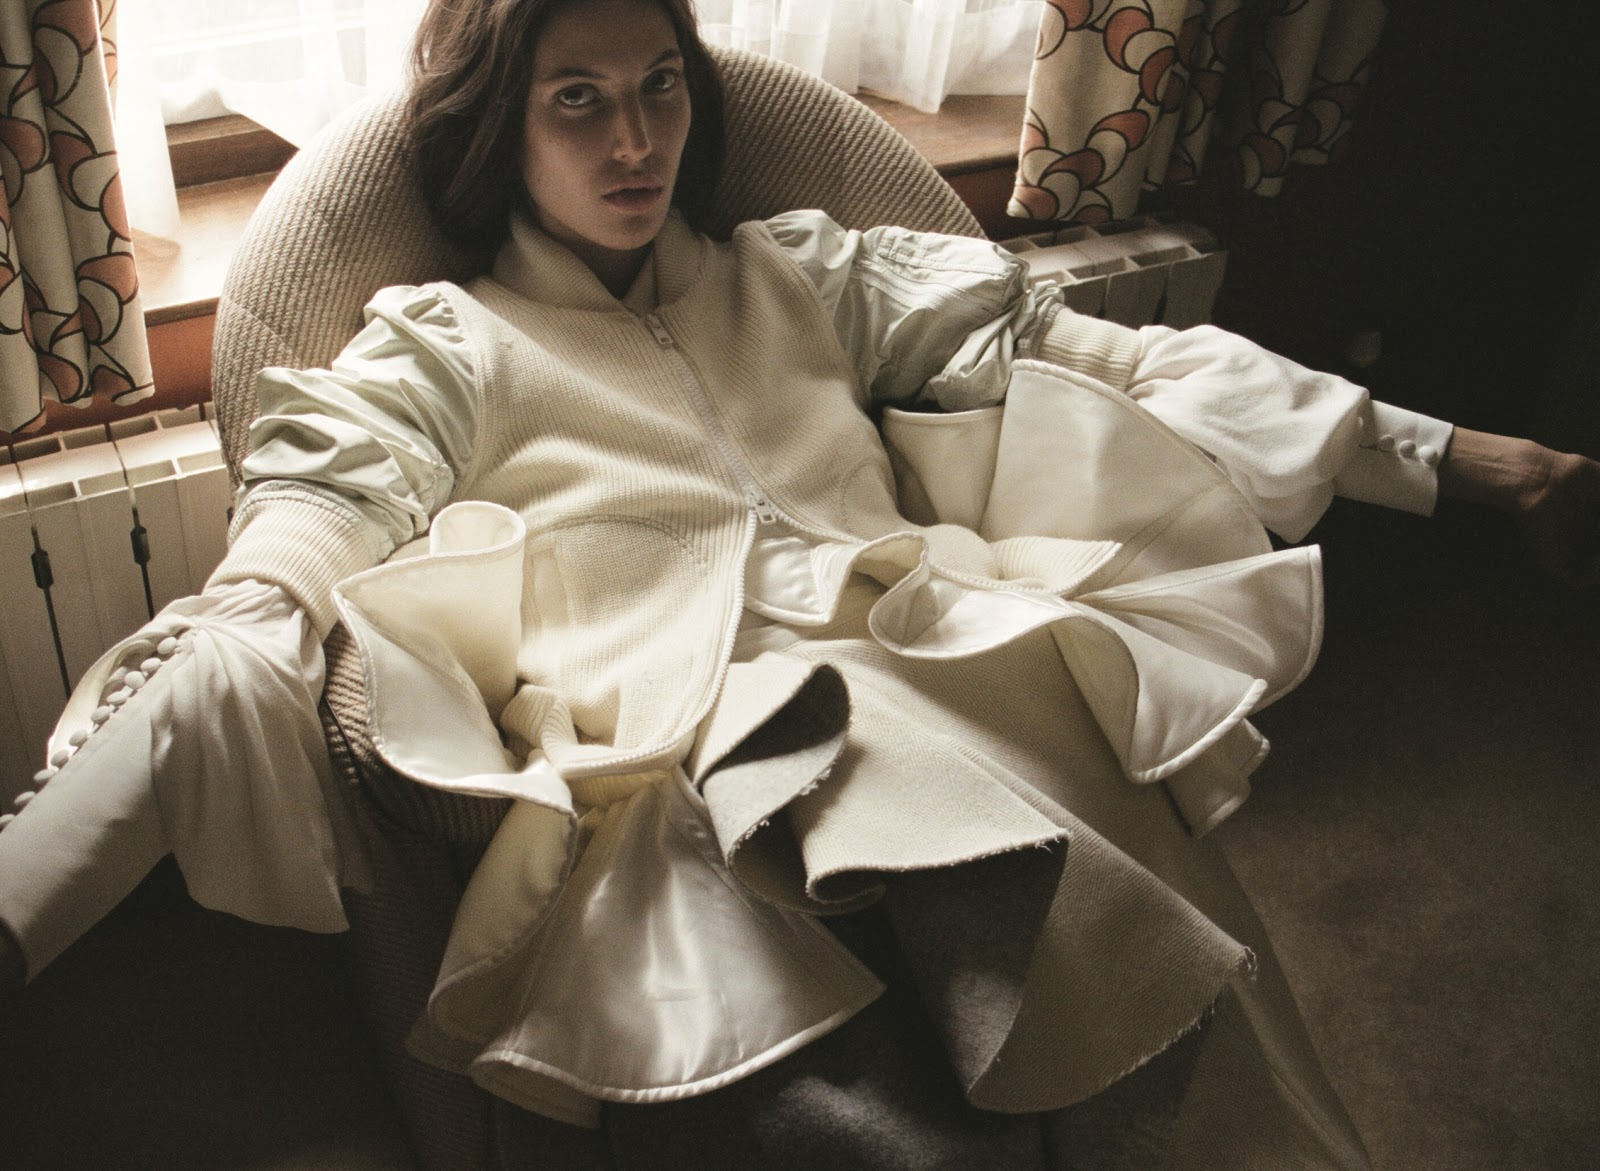 Ruby Aldridge by Lina Scheynius (Melancholia - Vogue Turkey November 2012) 4